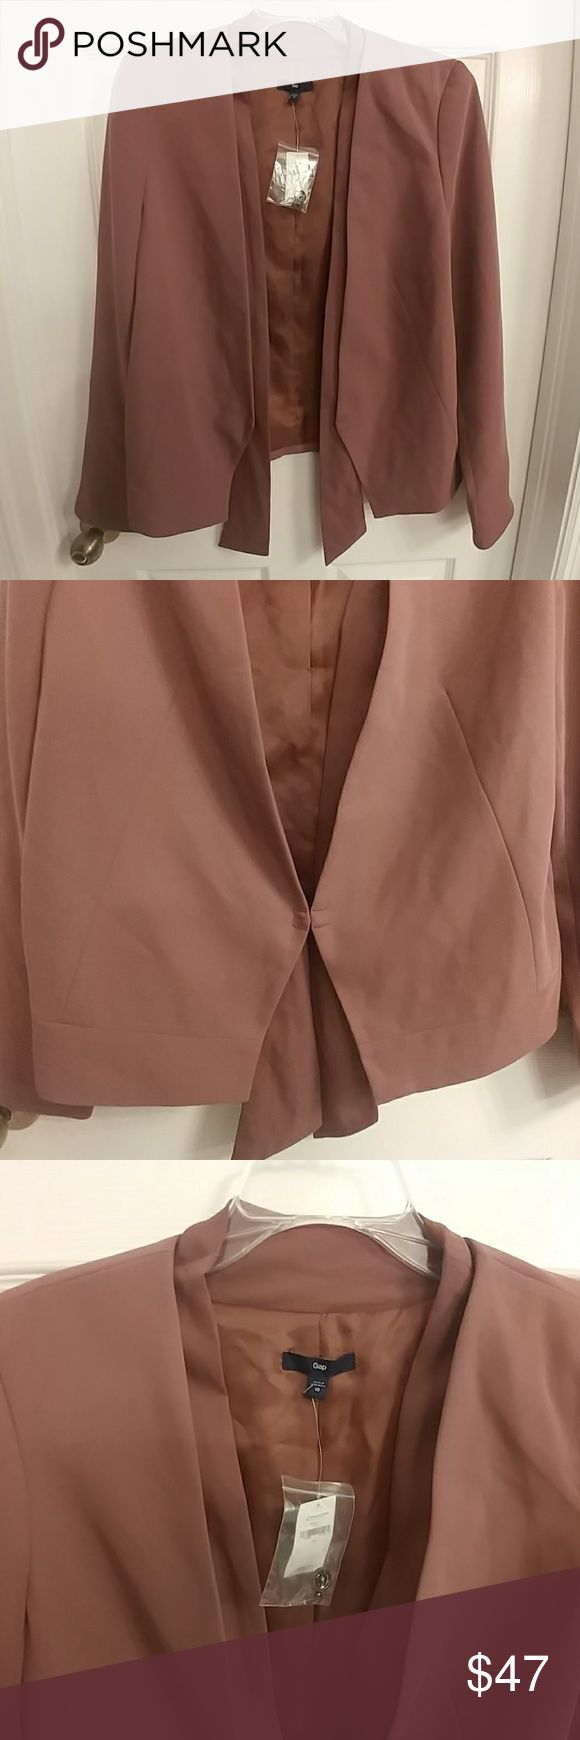 Gap Work Blazer/Jacket- Dark Taupe Long sleeve woven work blazer, dual lapel with scarf-like detail at bottom, 1 hook and eye closure at front, hidden button on each sleeve with vent, v-neck shape and great seaming details. Never worn. GAP Jackets & Coats Blazers